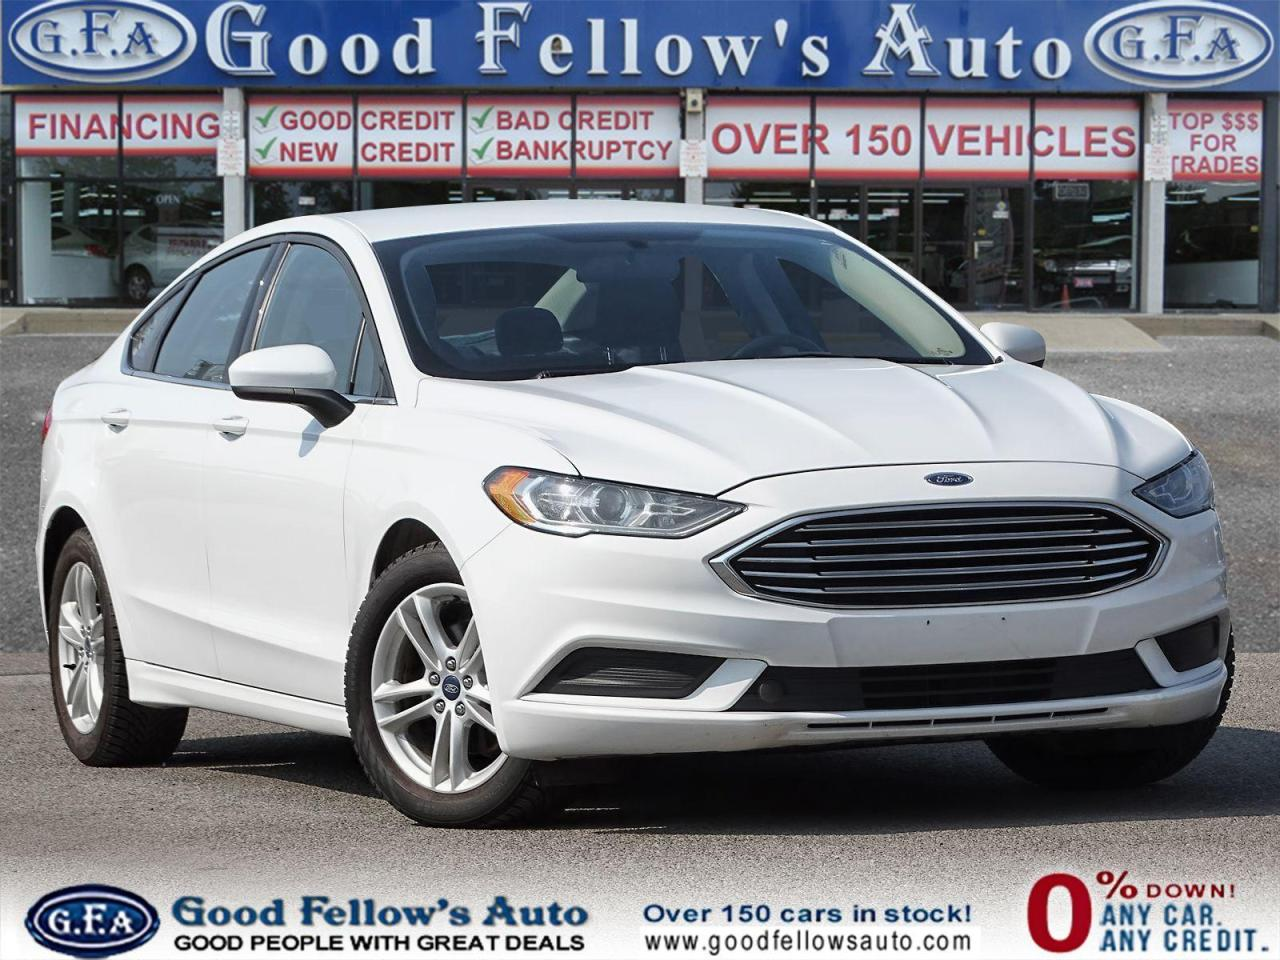 used 2018 Ford Fusion car, priced at $11,999